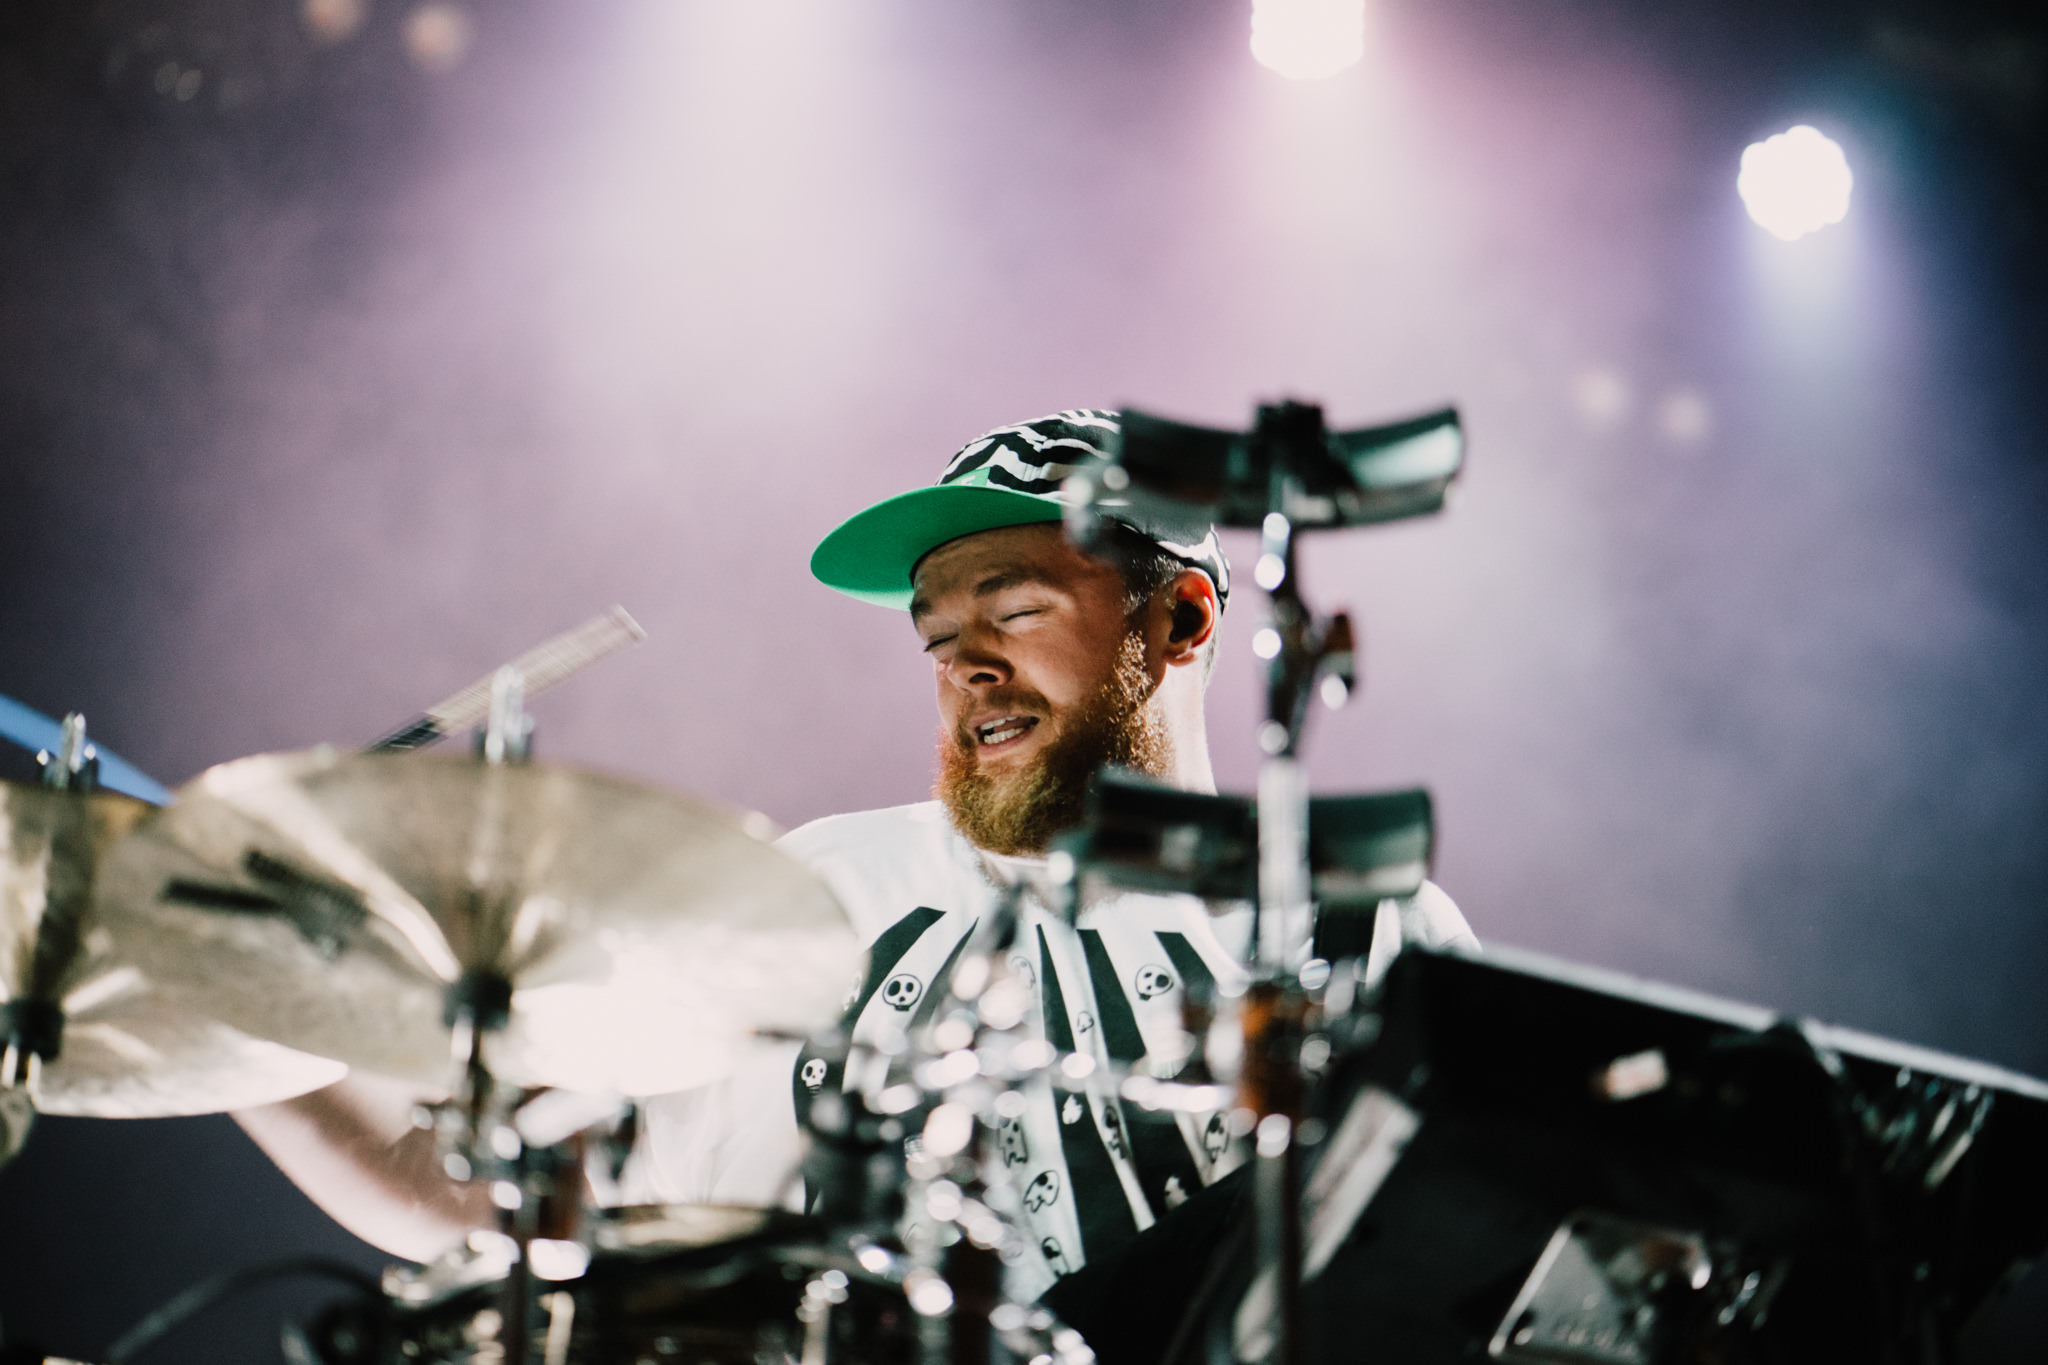 concert photography editing techniques